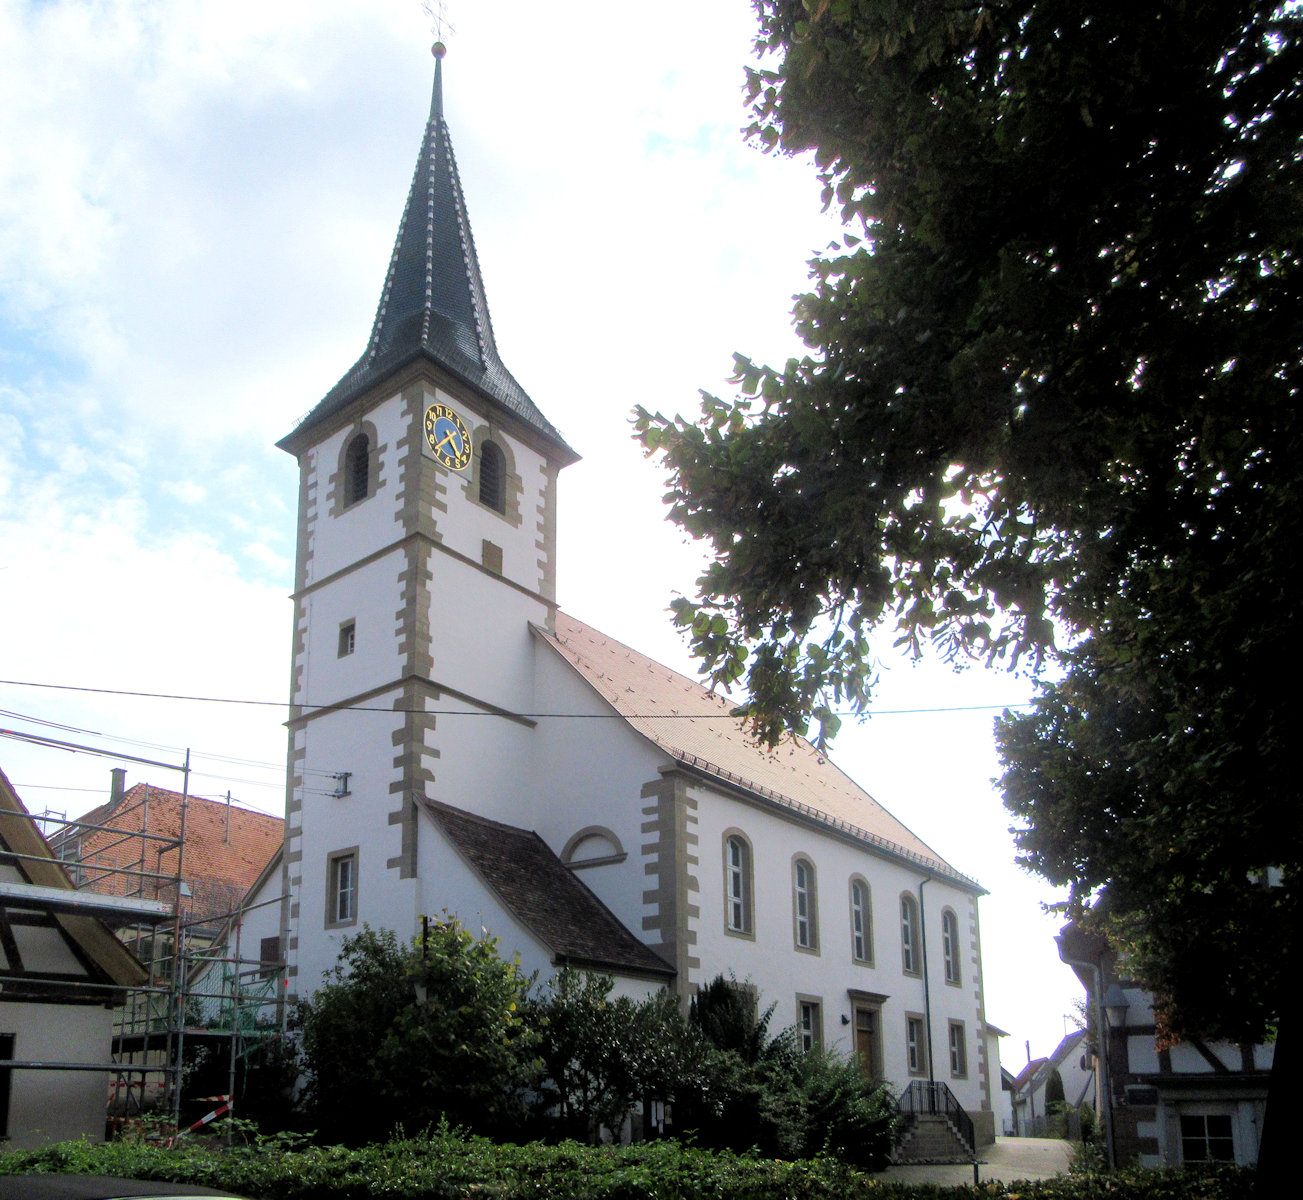 Evang. Kirche in Rielingshausen